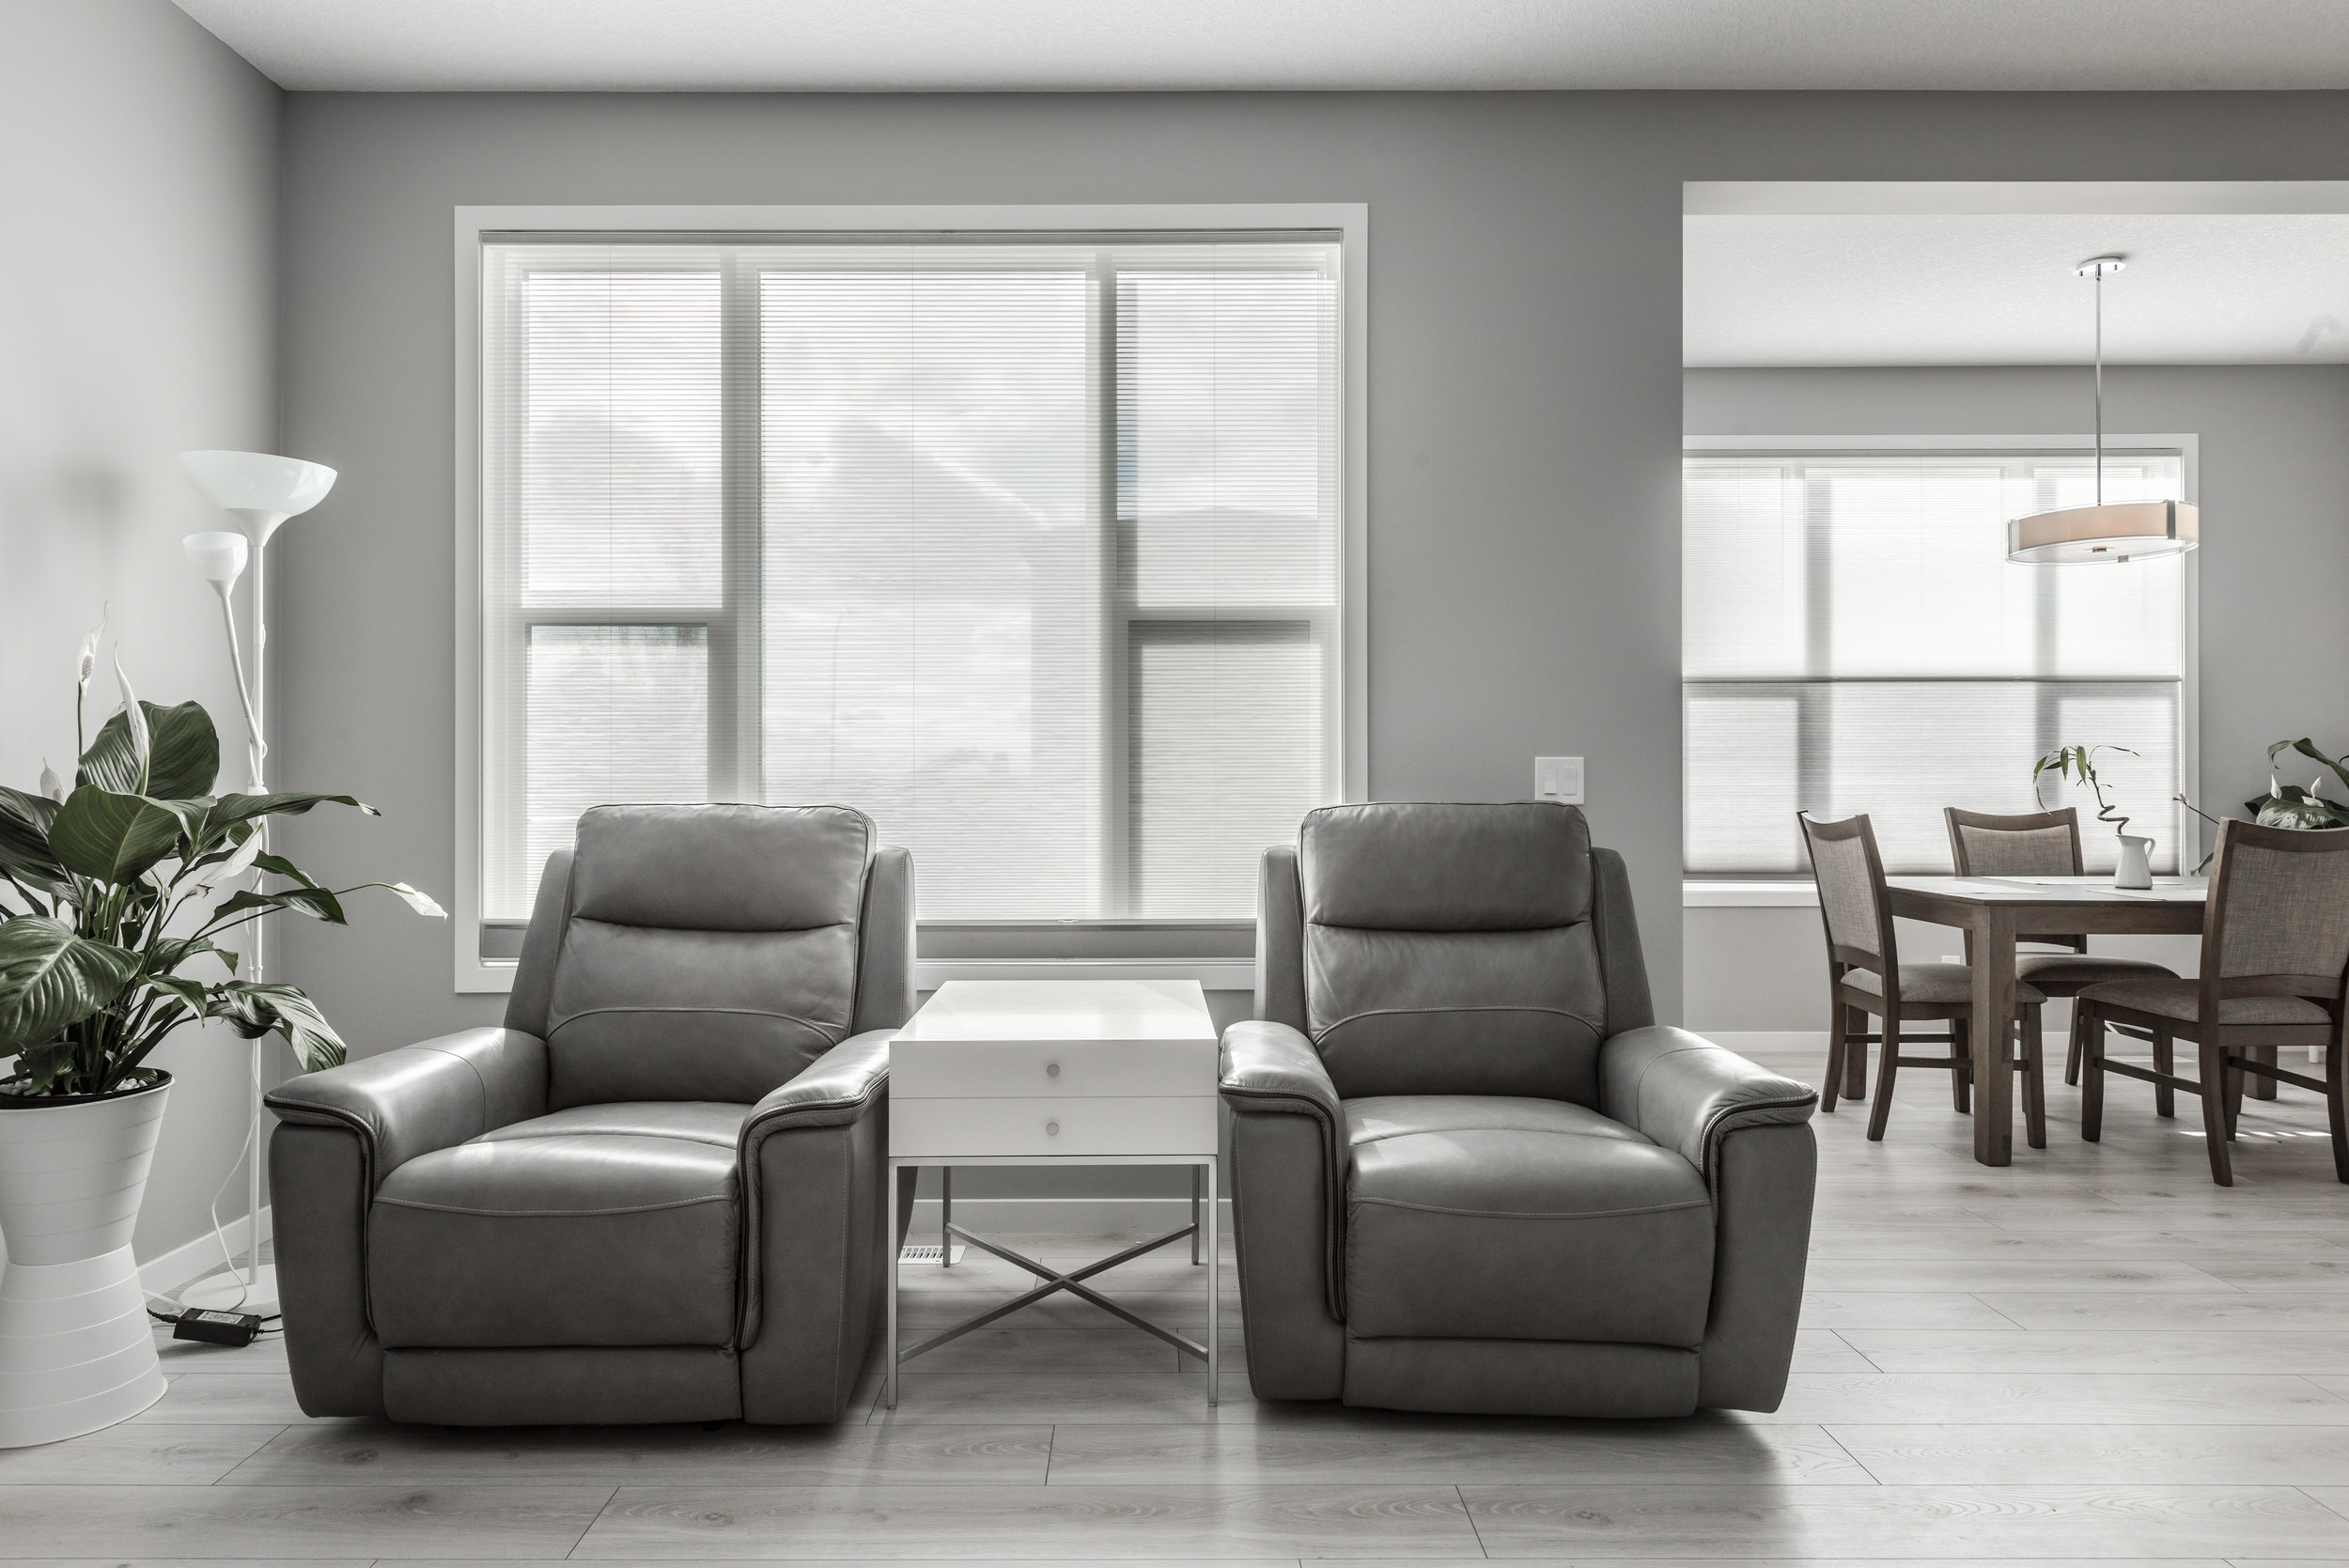 calgary cellular shades - honeycomb blinds home theatre